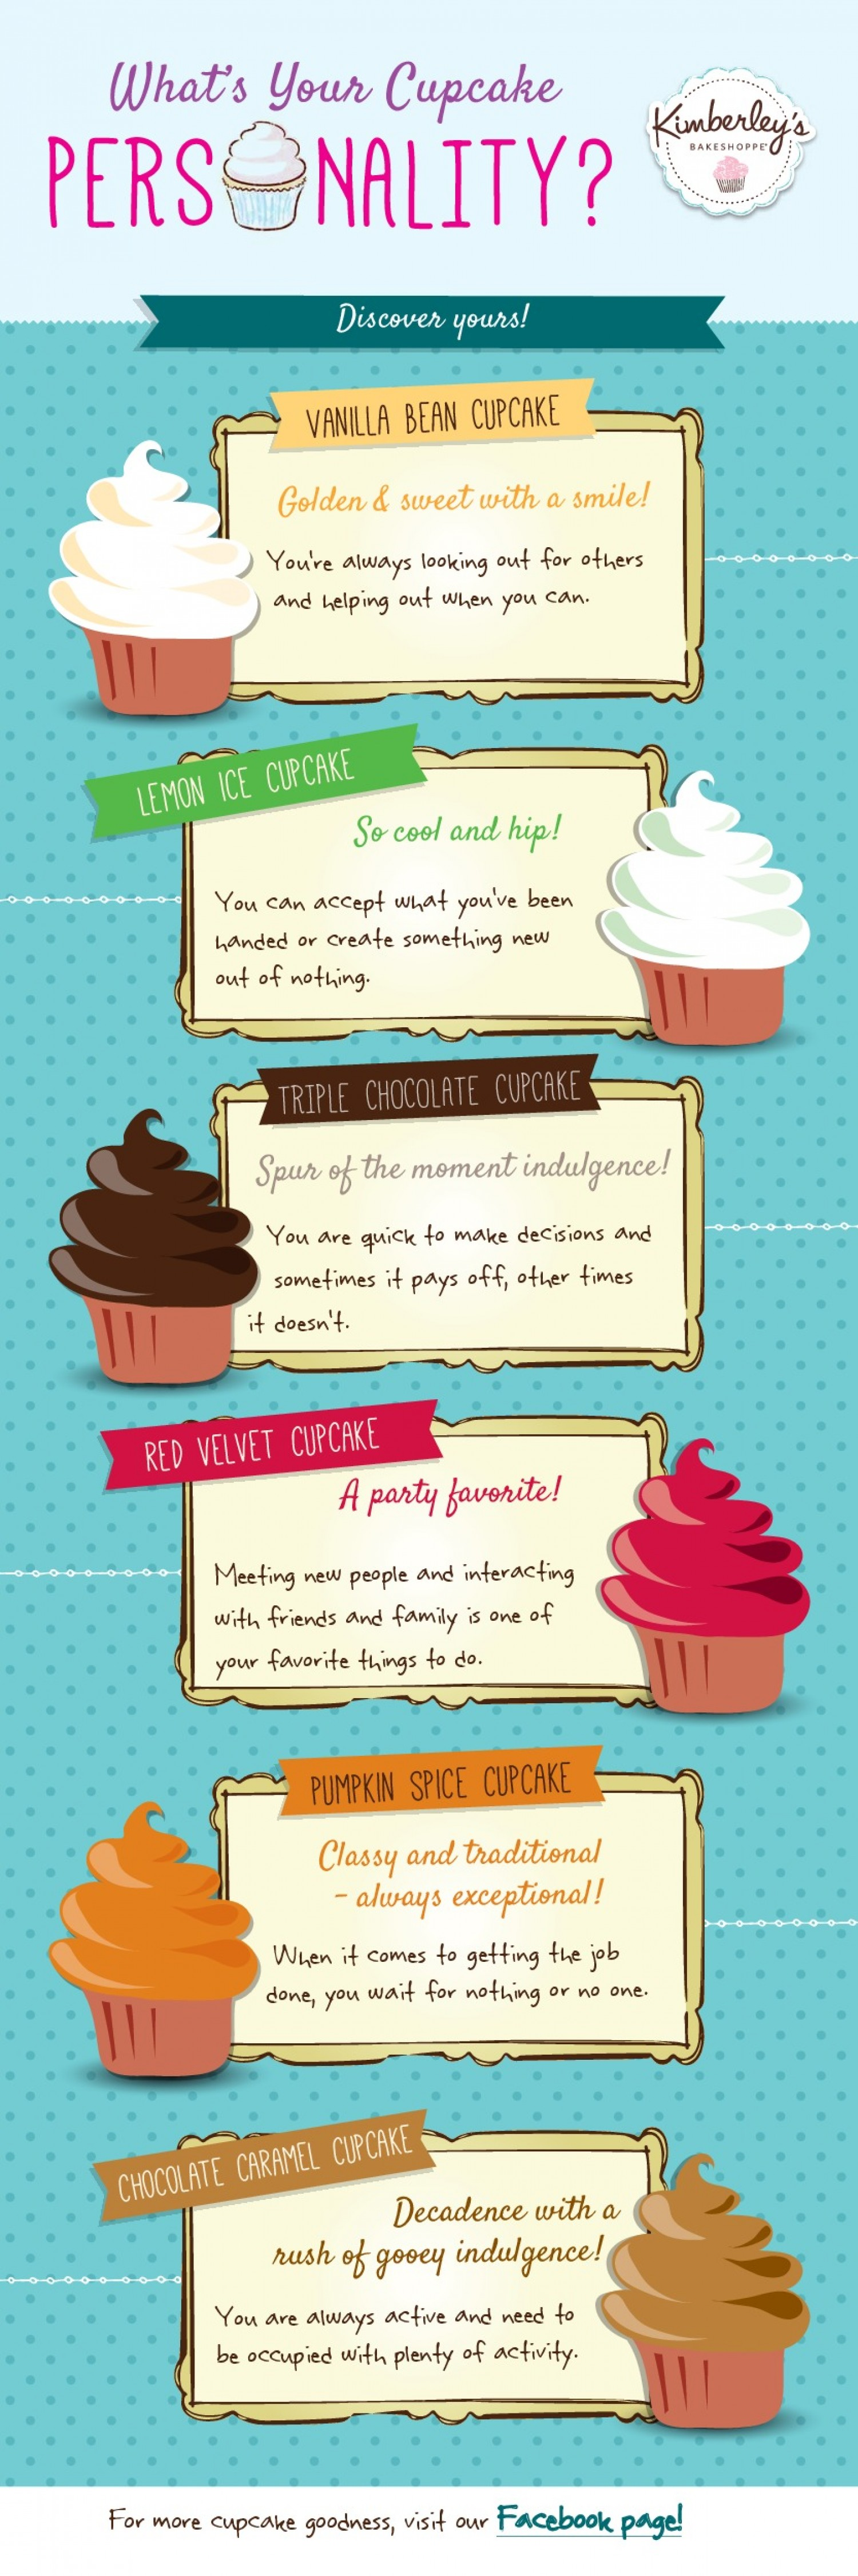 What's Your Cupcake Personality